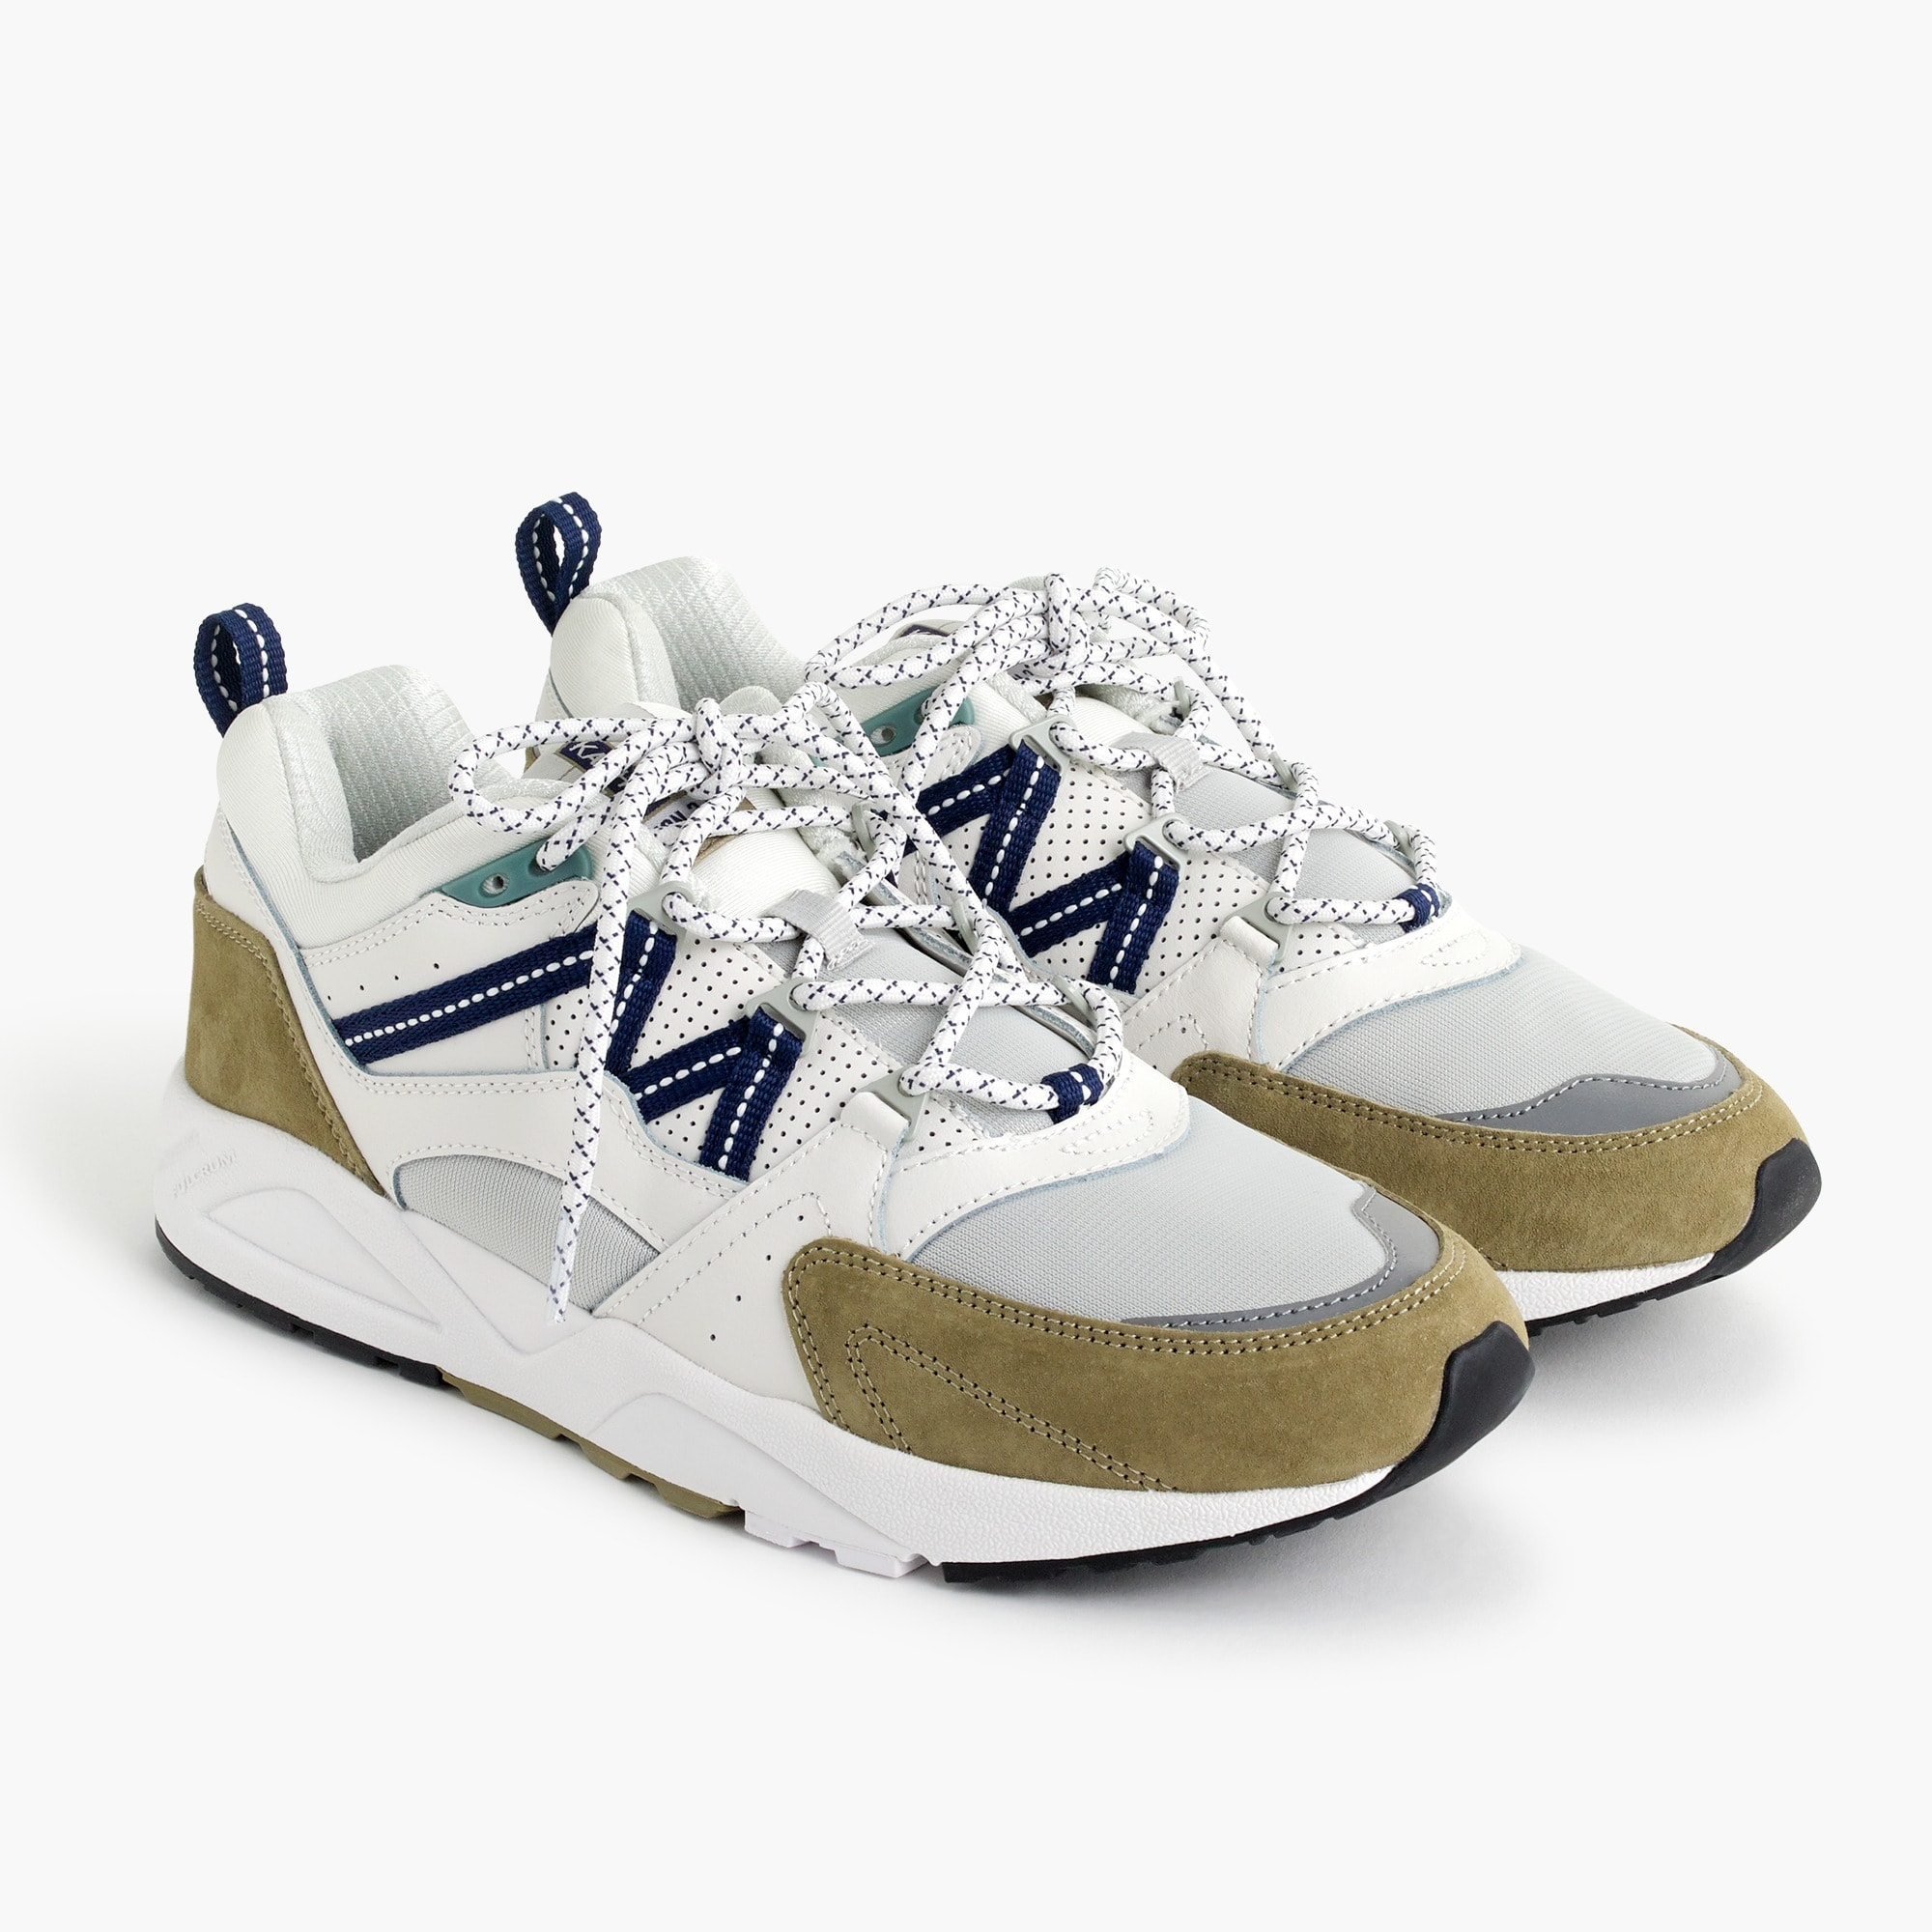 Karhu Fusion 2.0 sneakers men j.crew in good company c